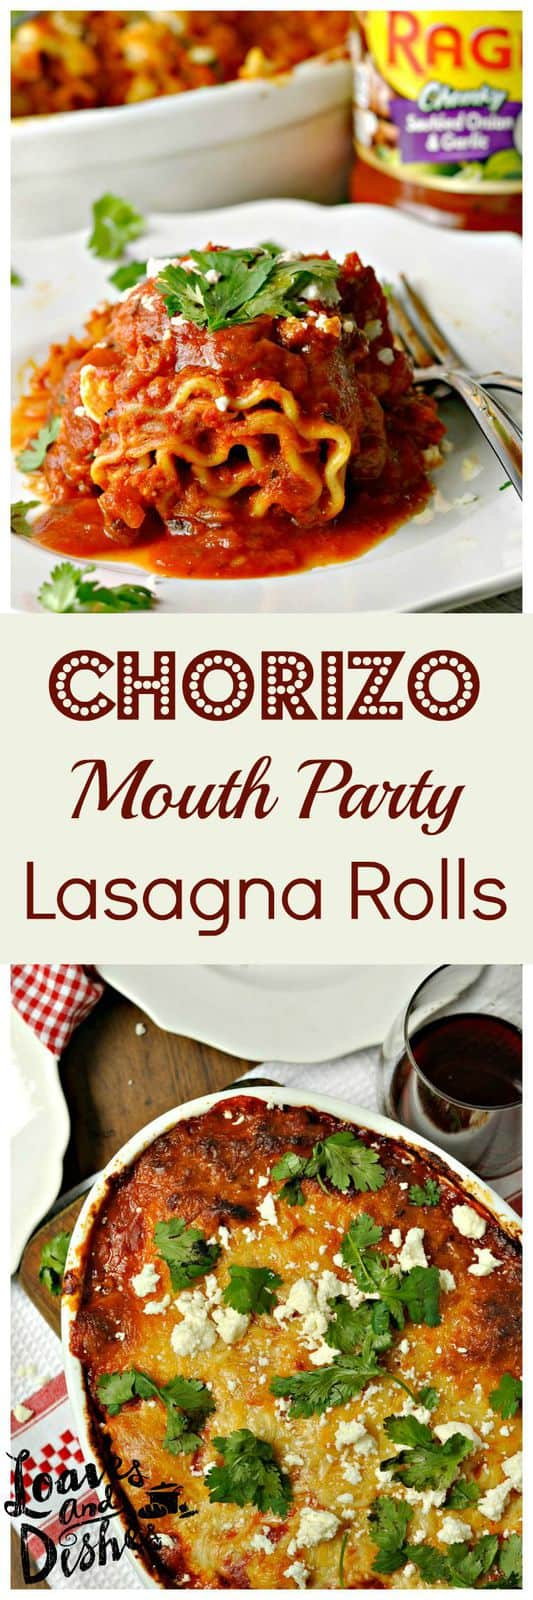 Need an easy dinner recipe that is a total mouth party? I KNEW it! Put this together in a few mintues, then go sit down! Chorizo Mouth Party Lasagna Rolls. Recipe with photo instructions @www.loavesanddishes.net